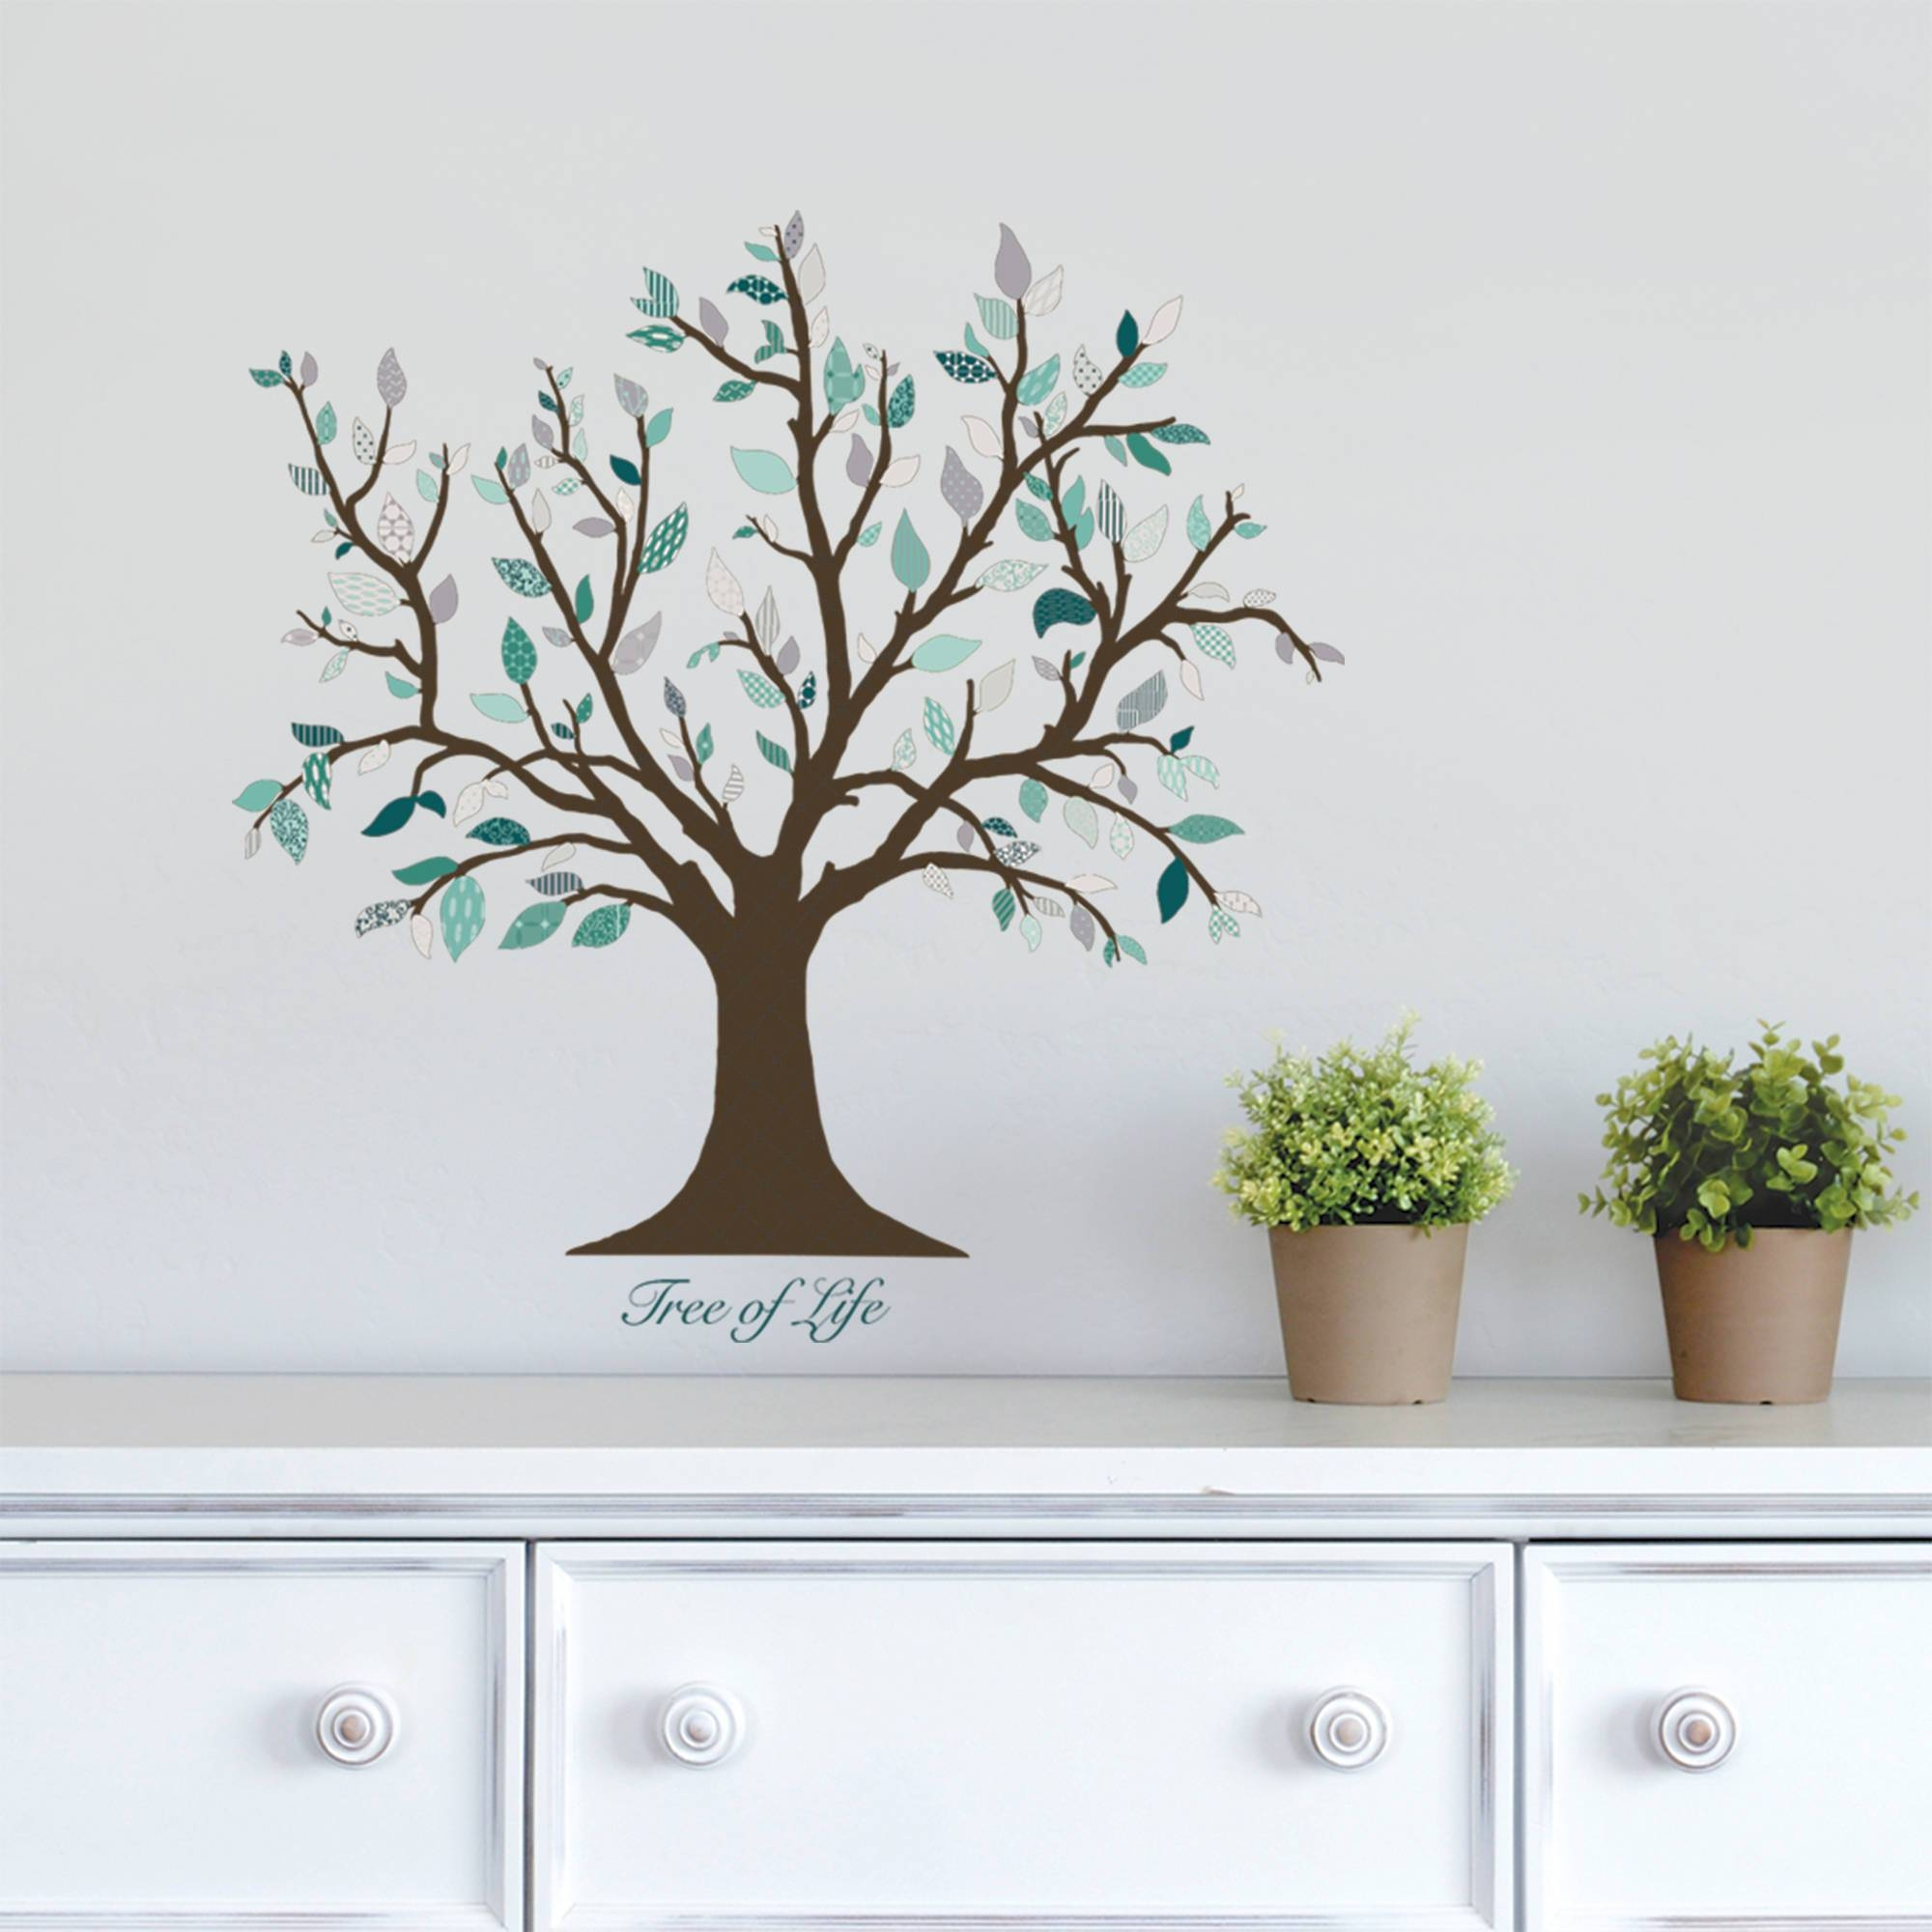 Dcwv Vinyl Tree Of Life Wall Decal – Walmart Regarding Most Recent Walmart Wall Stickers (View 5 of 25)